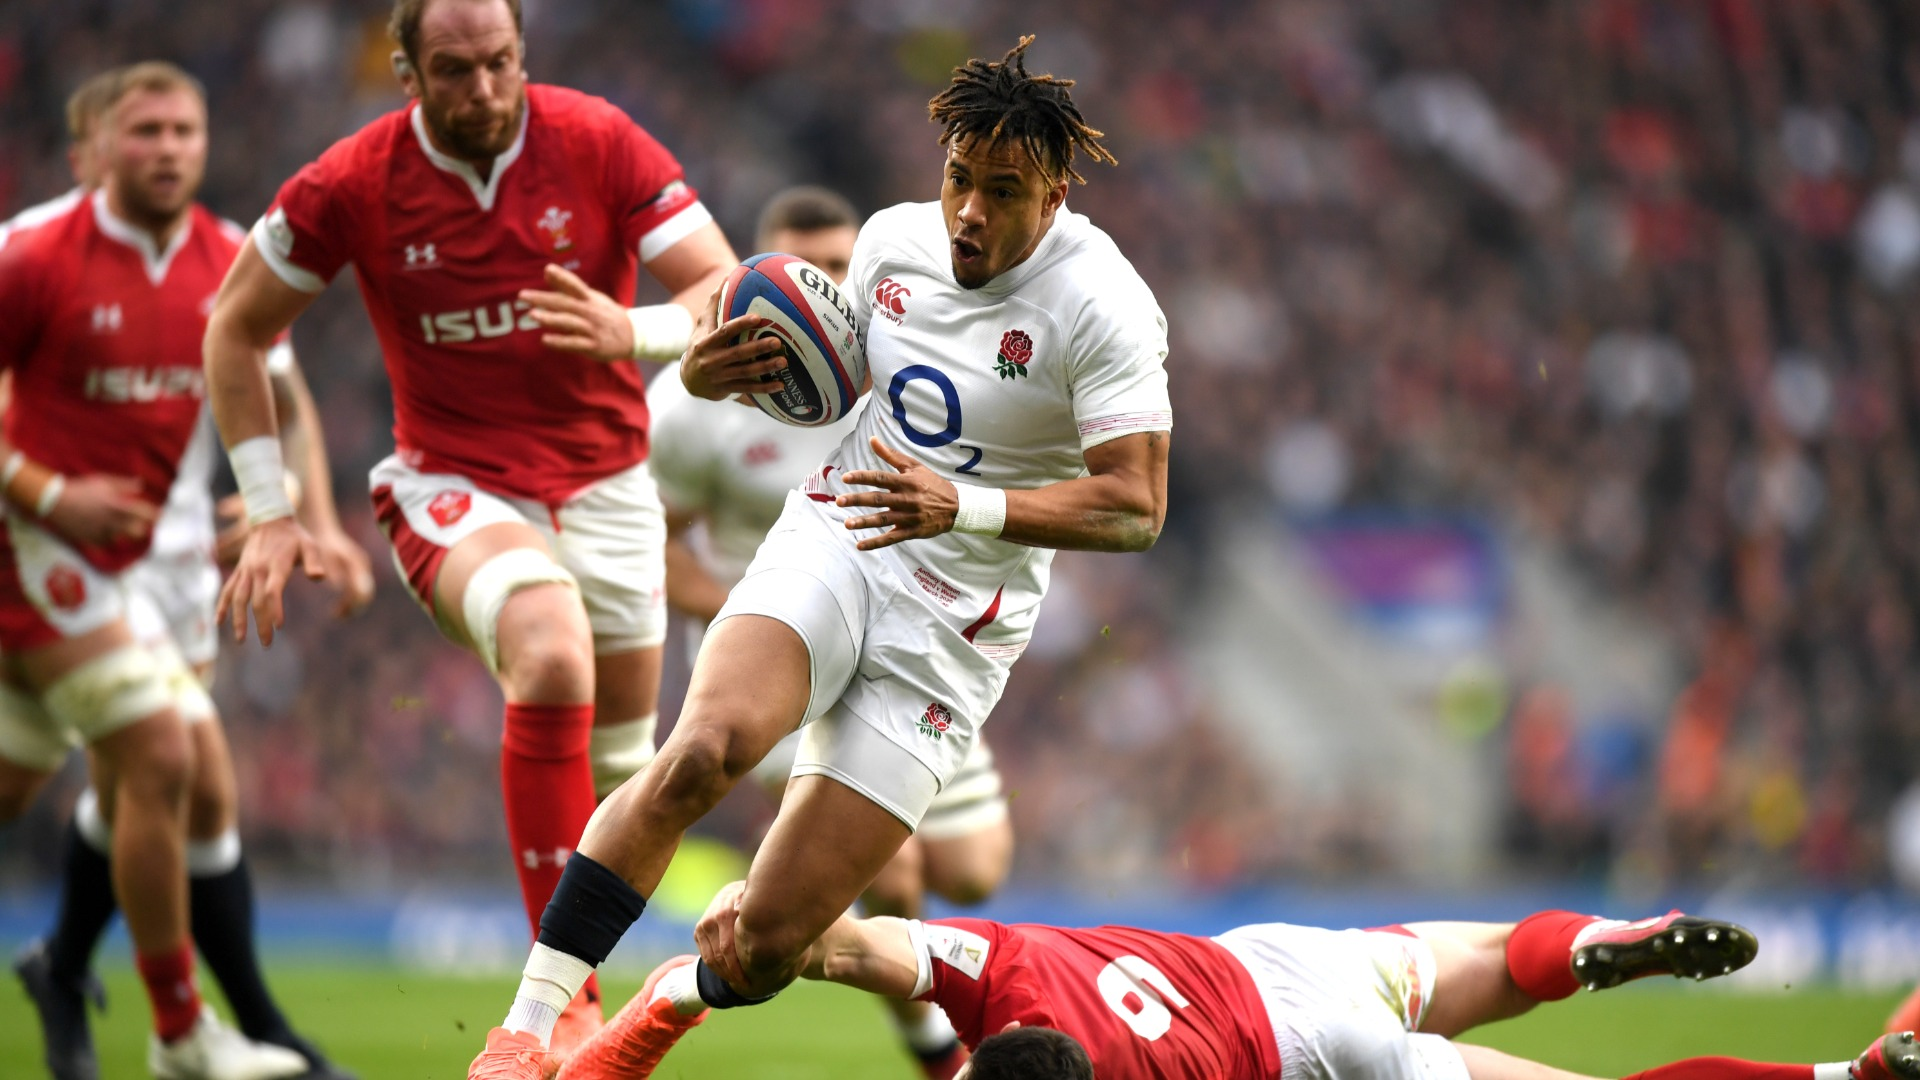 Watson and Cowan-Dickie return to England squad for Wales clash